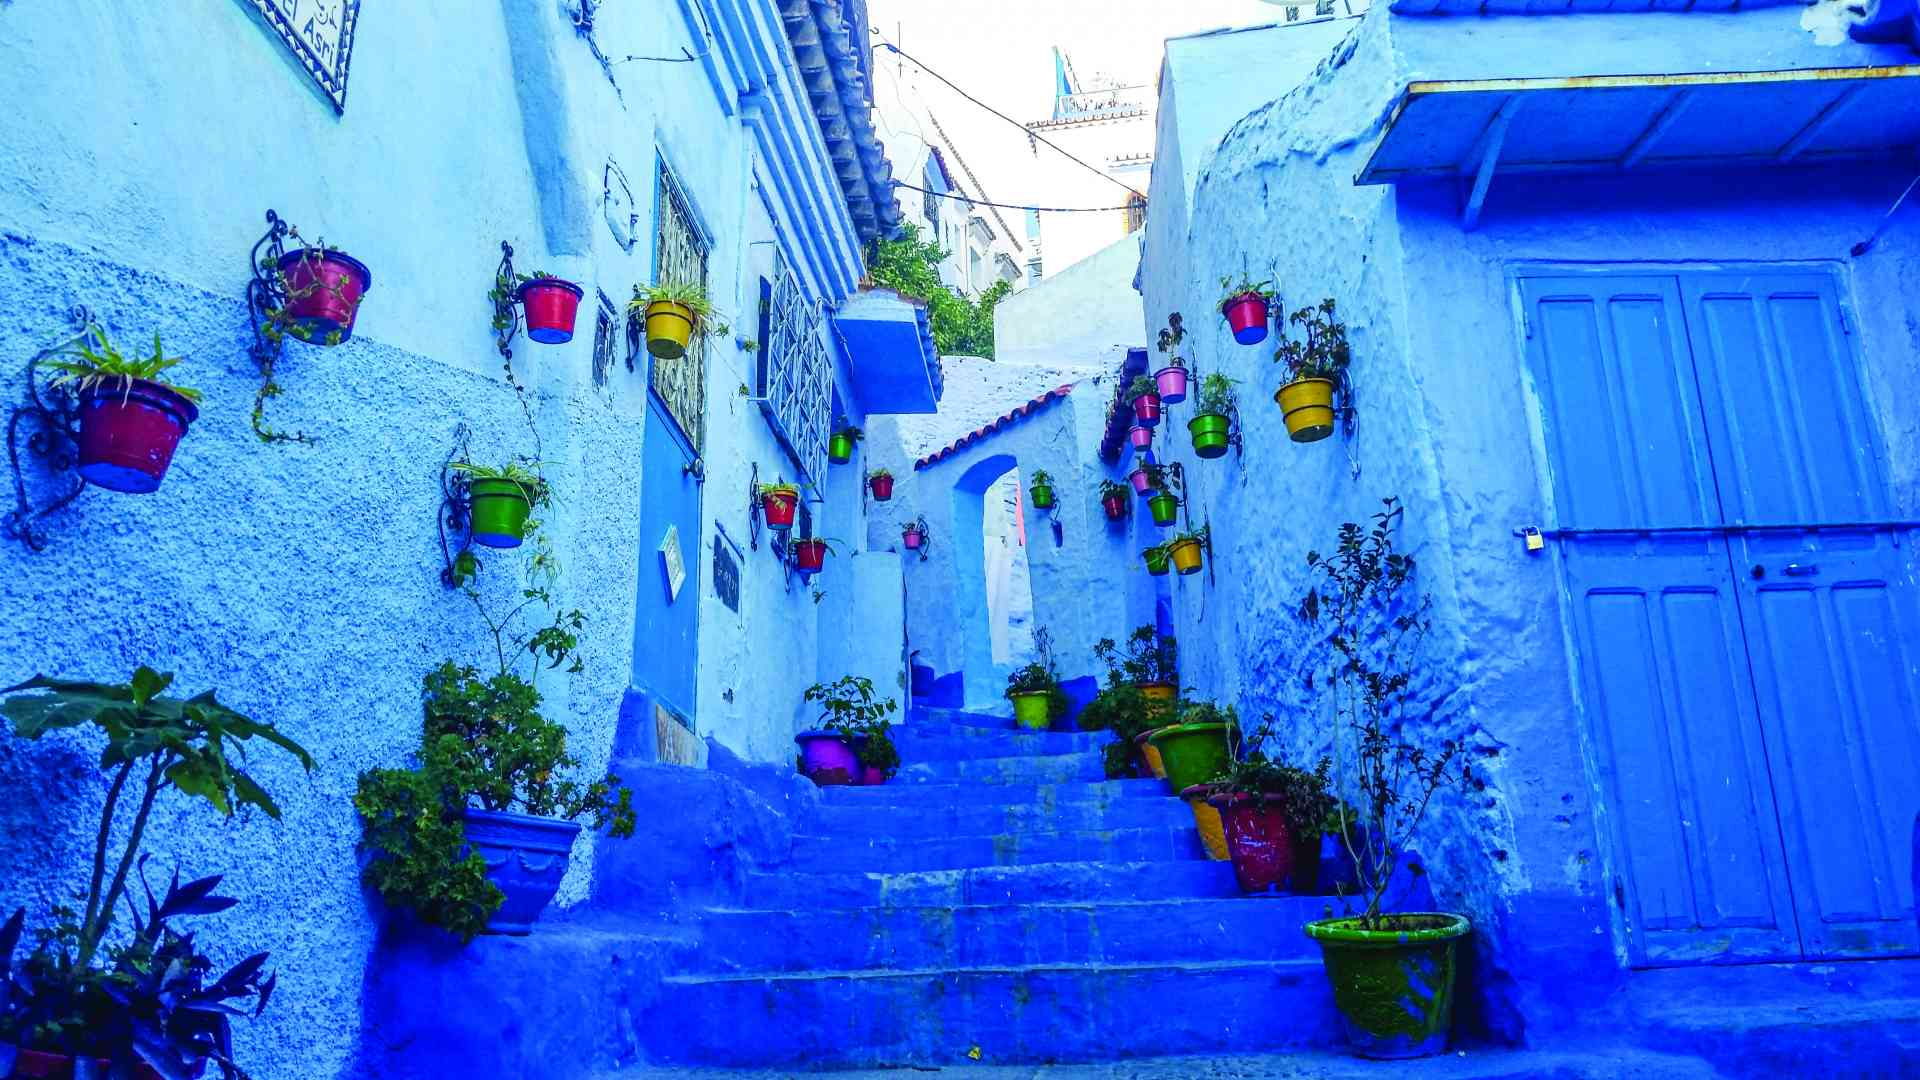 Chefchaouen, Morocco by Rachel Footner